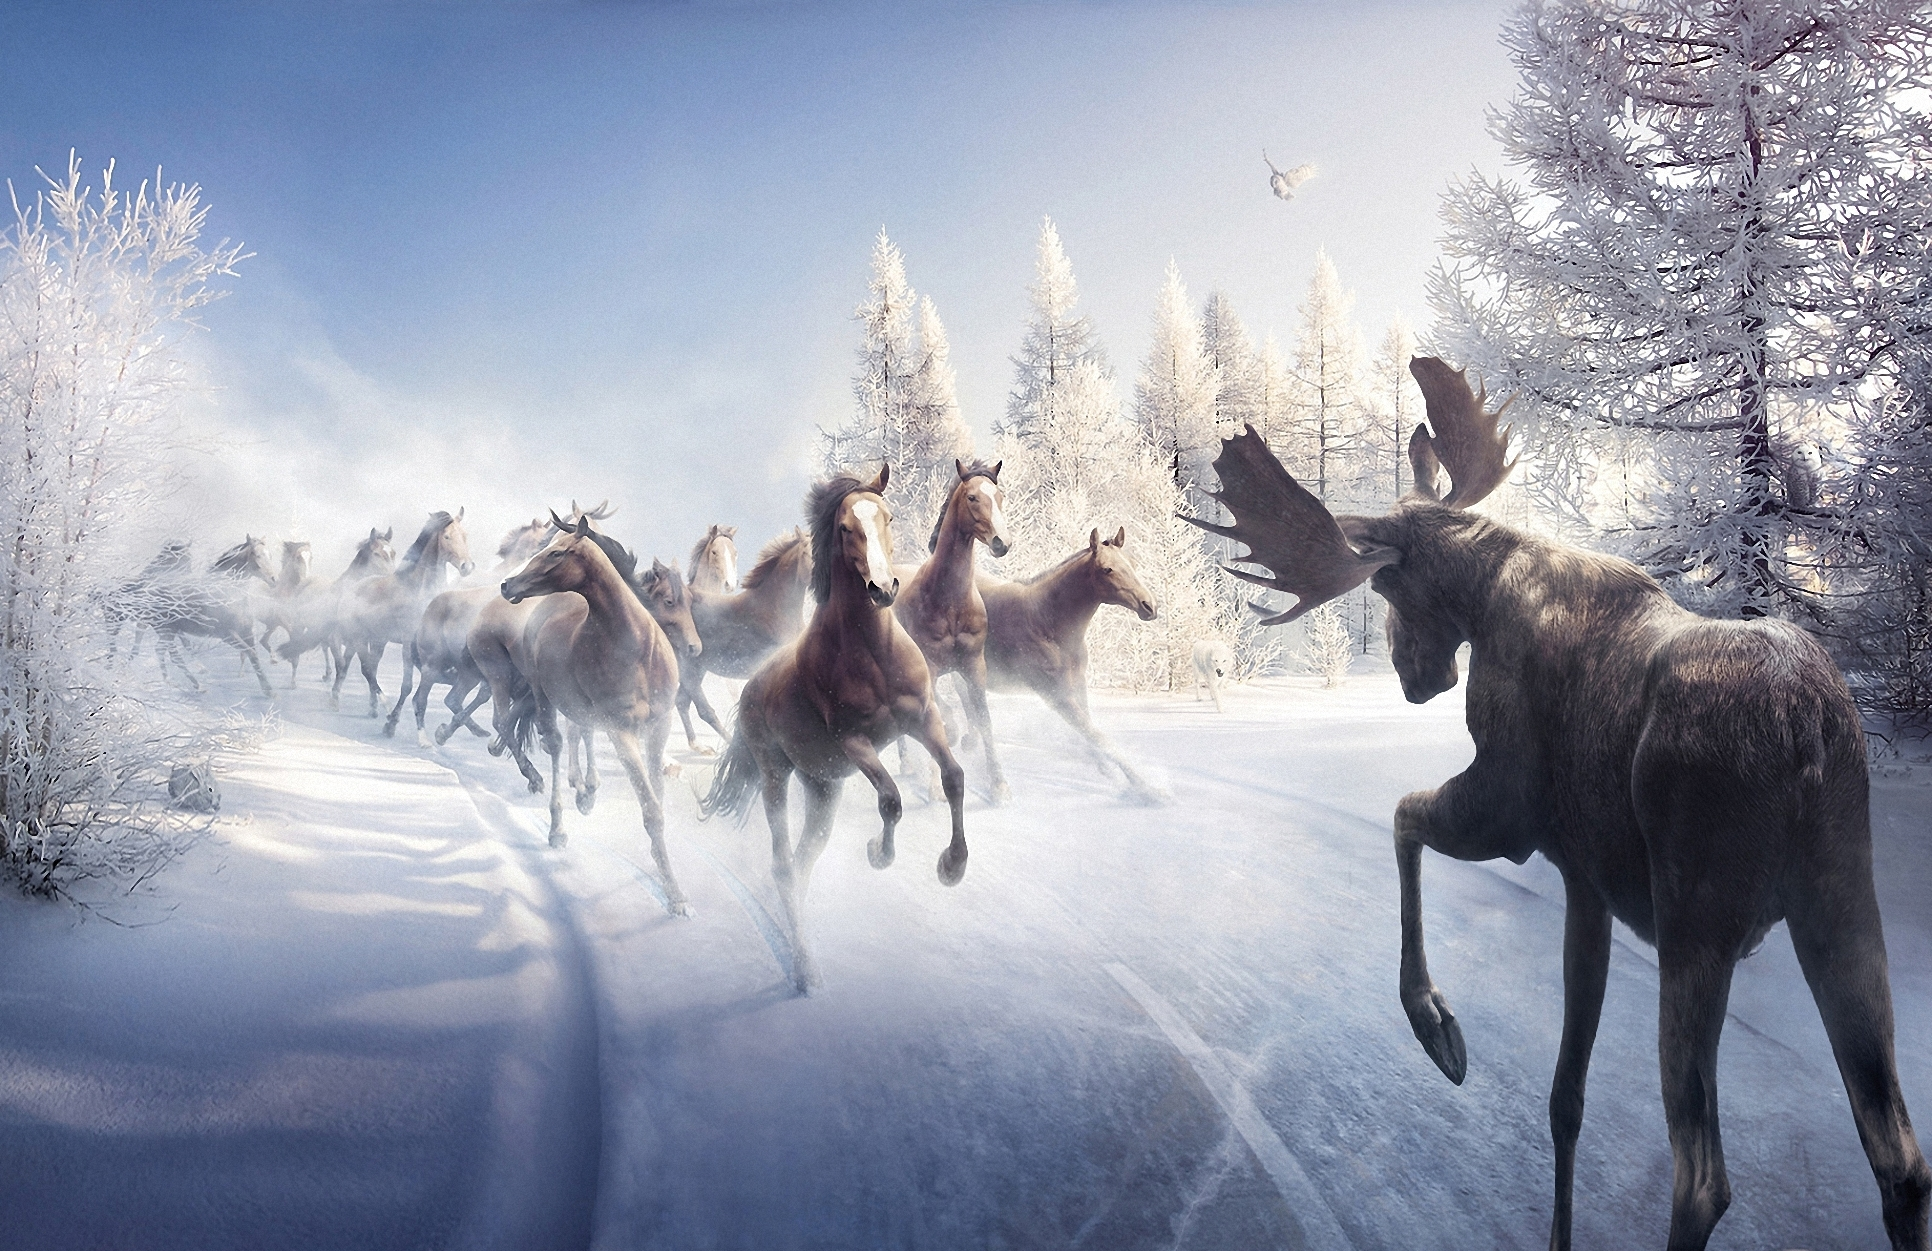 nature landscapes winter snow trees horses moose wallpaper background 1932x1251